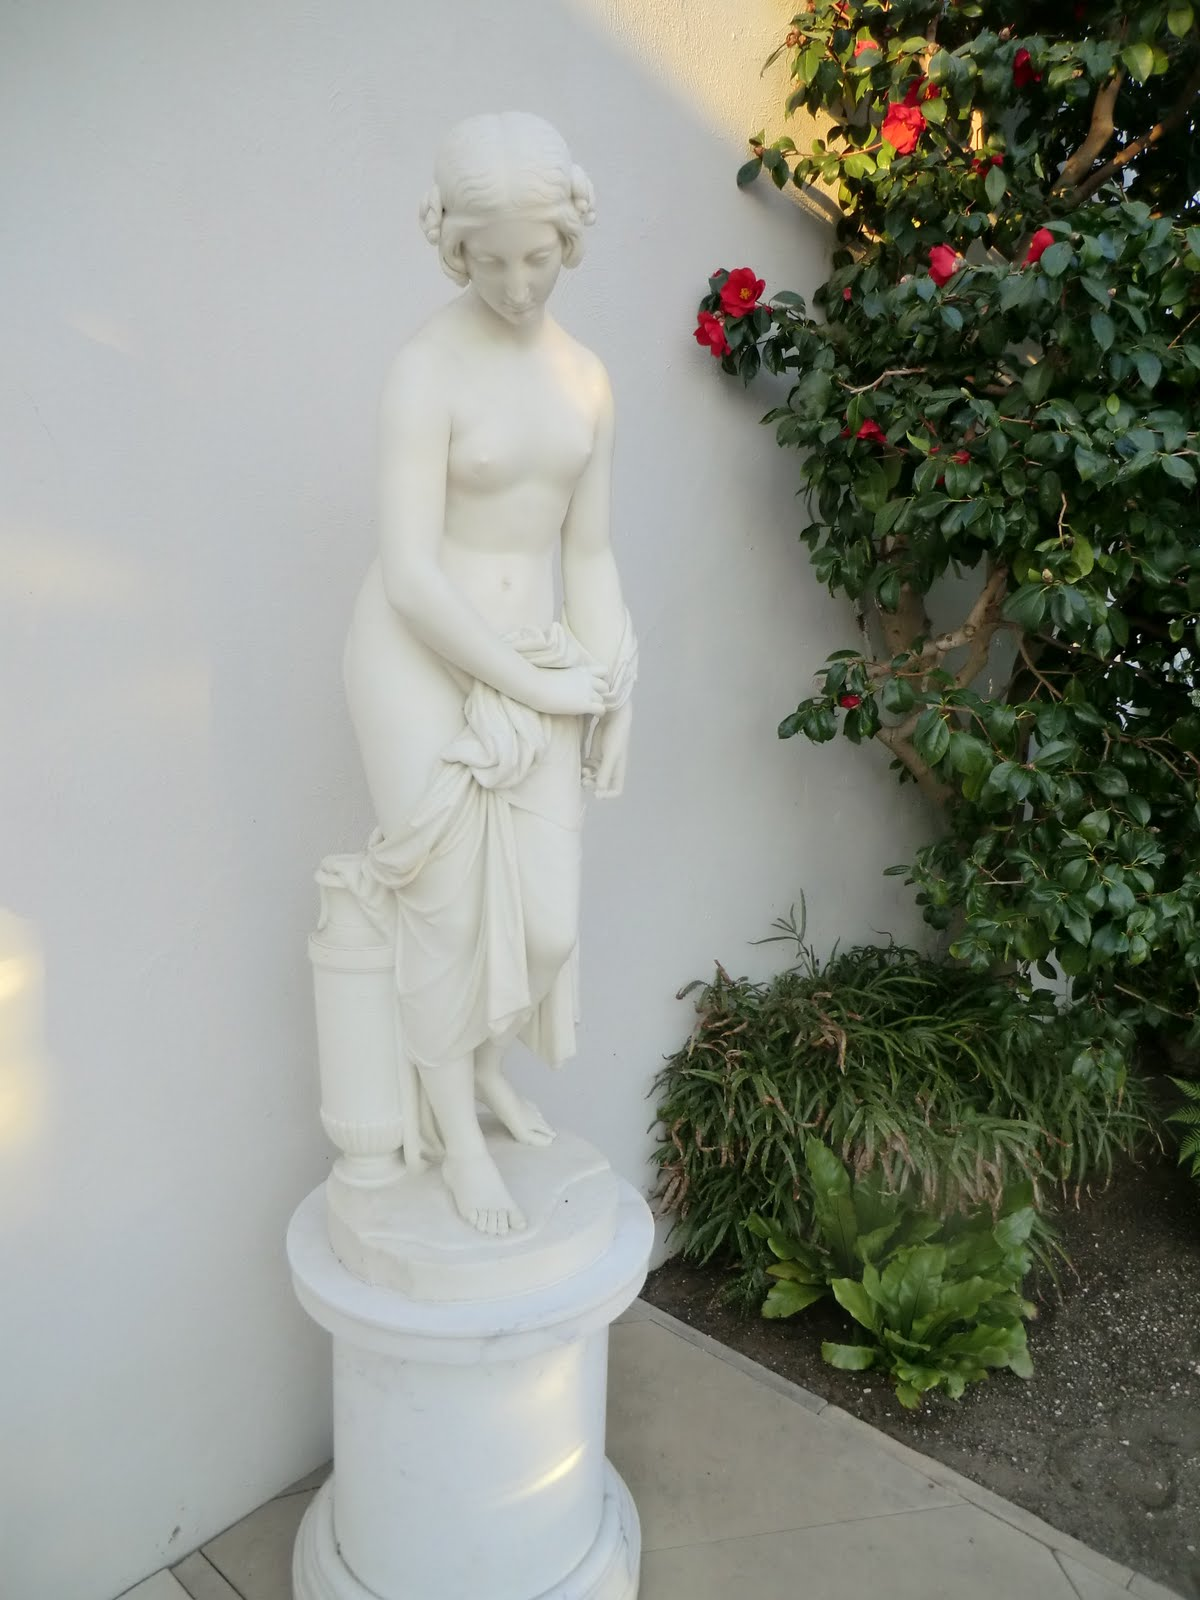 CIMG2412 Statue in Conservatory, Chiswick House